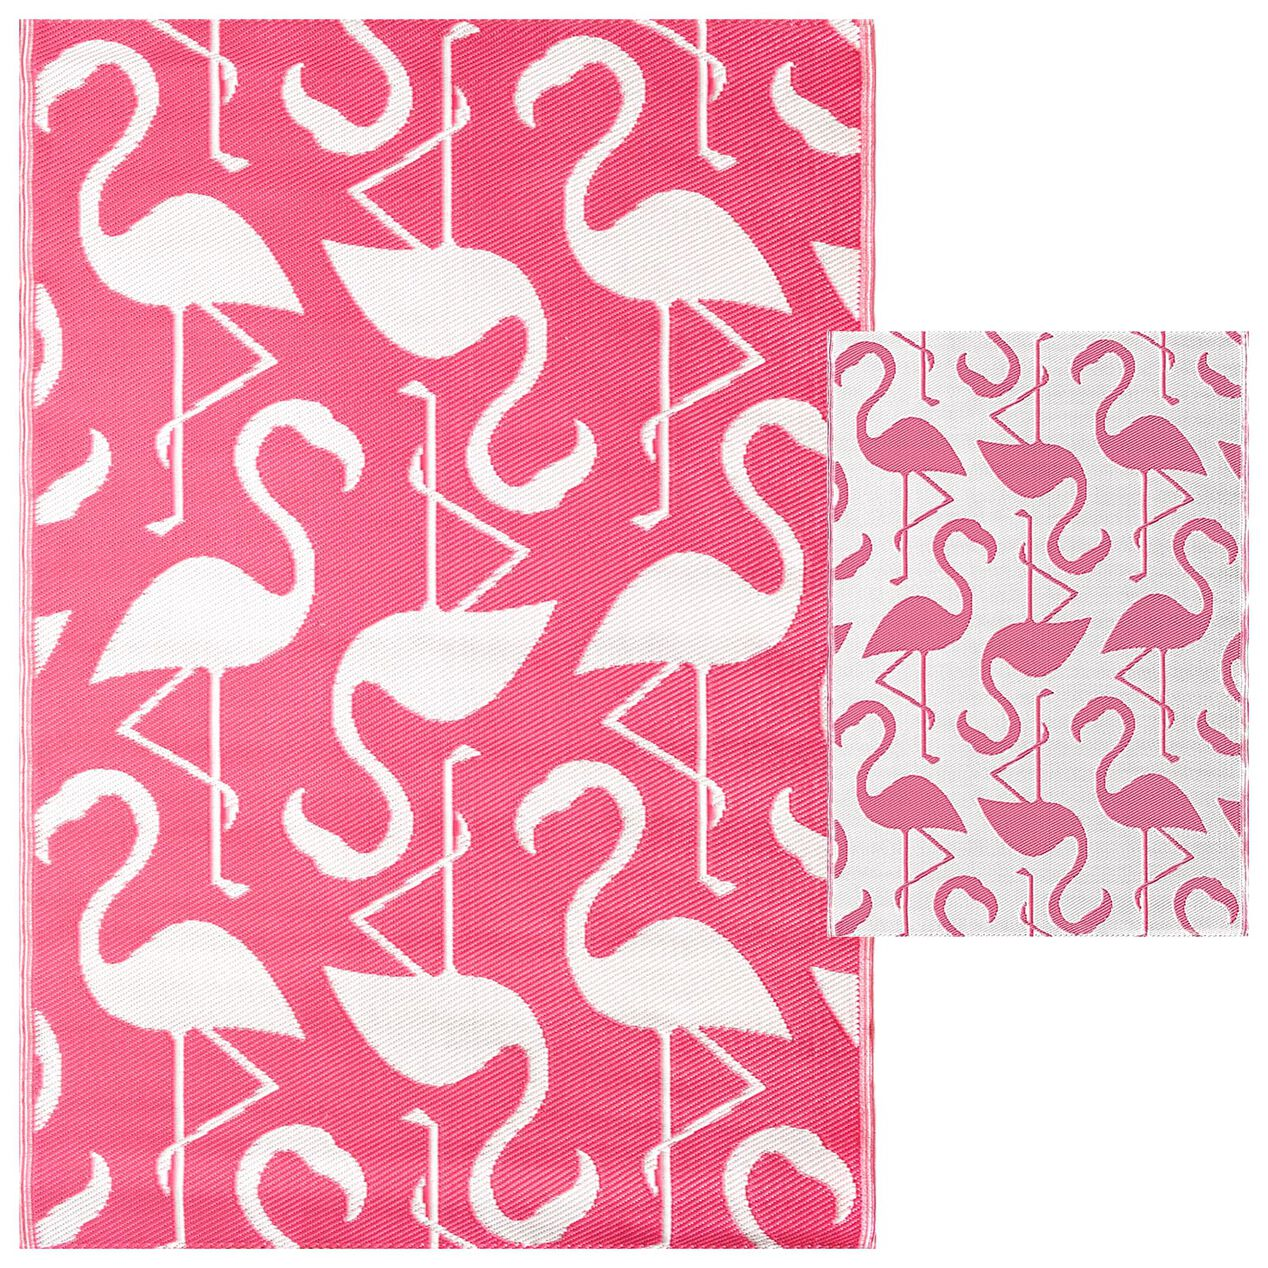 Pink Flamingo Outdoor Woven Area Rug 5x7 At Home